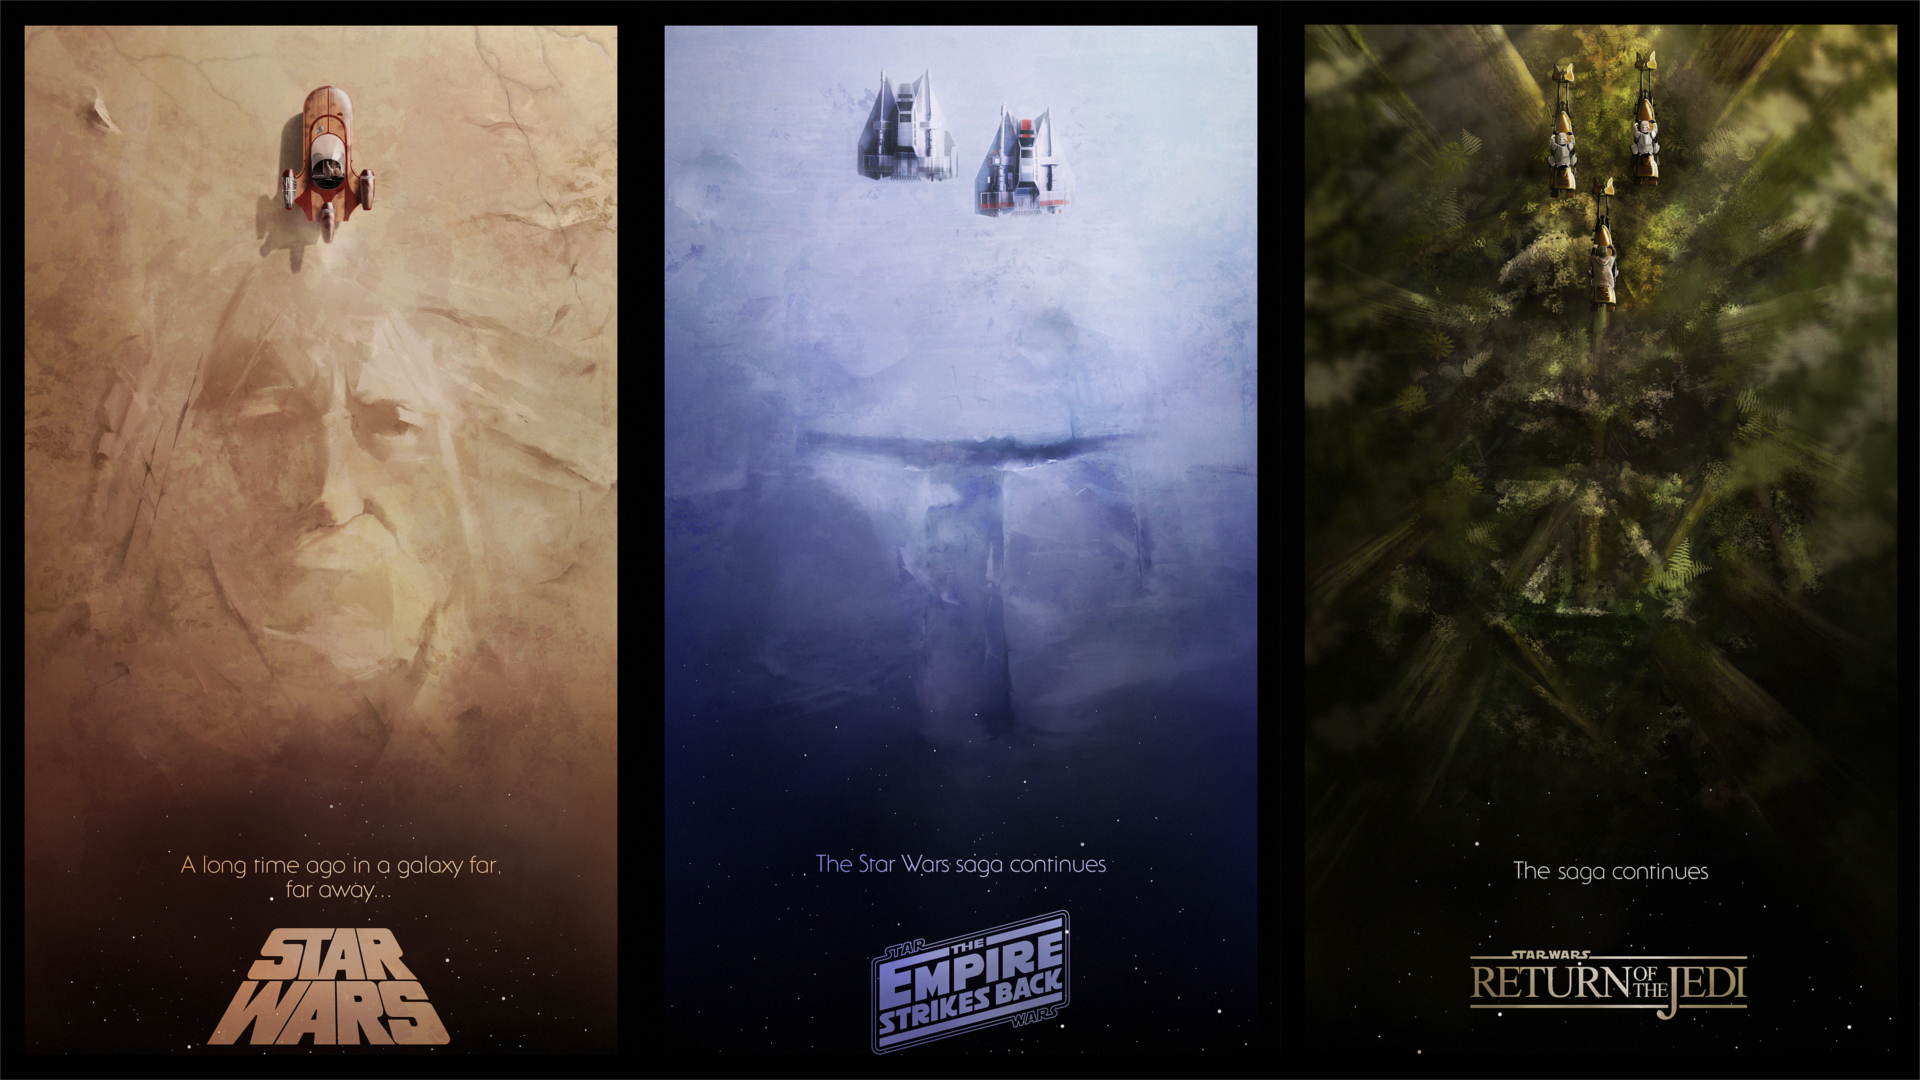 Image_4_YLRKj The Best Star Wars Posters: Originals and fan-made ones